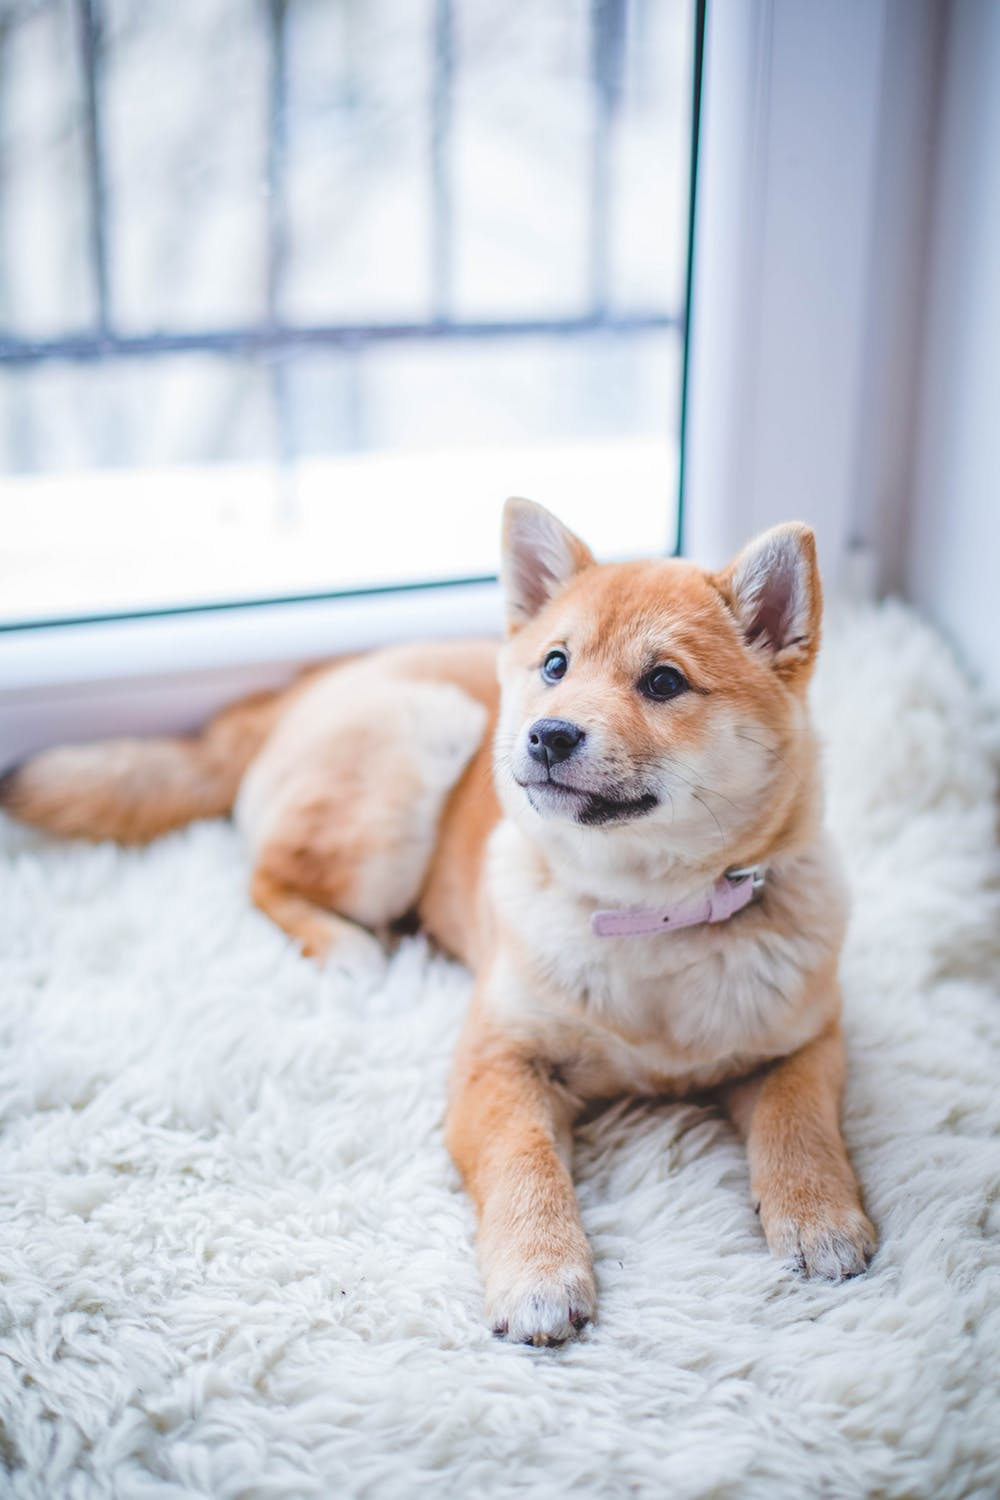 Does Pet Insurance Actually Save You Money?